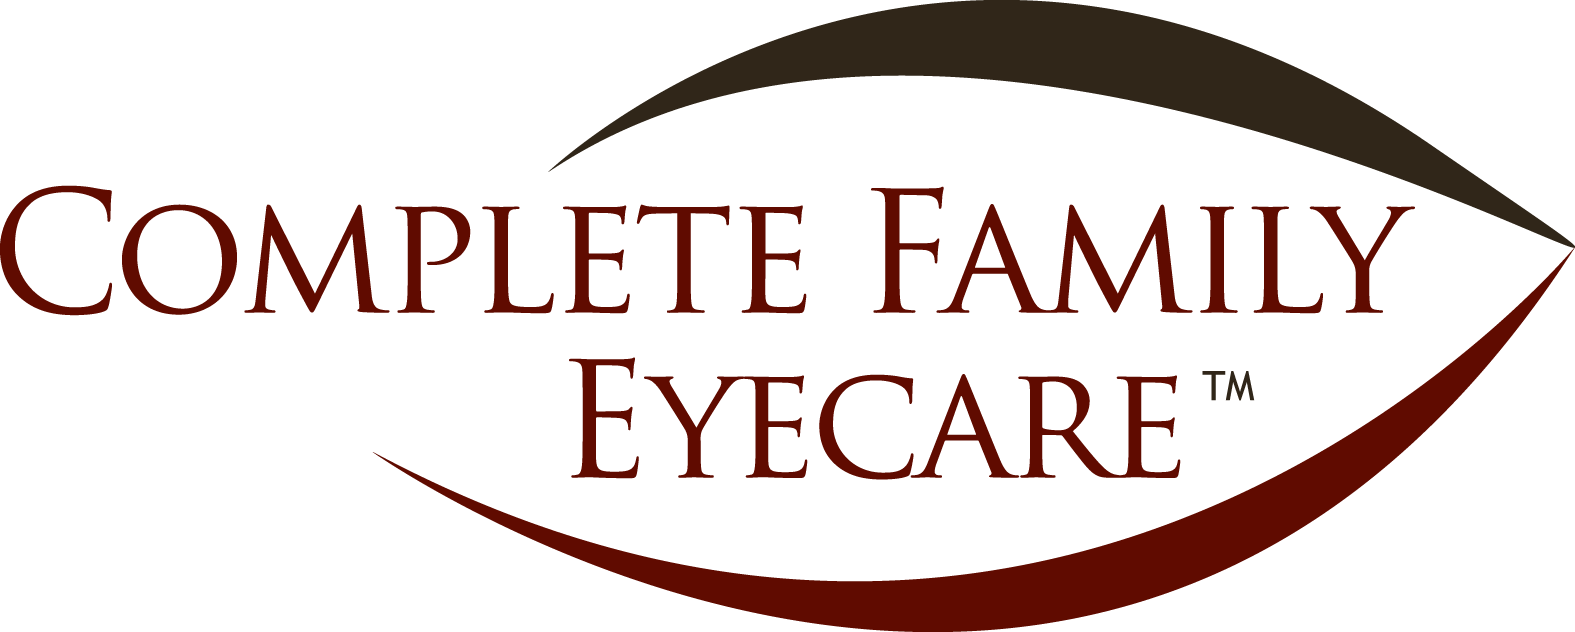 Complete Family Eyecare Logo